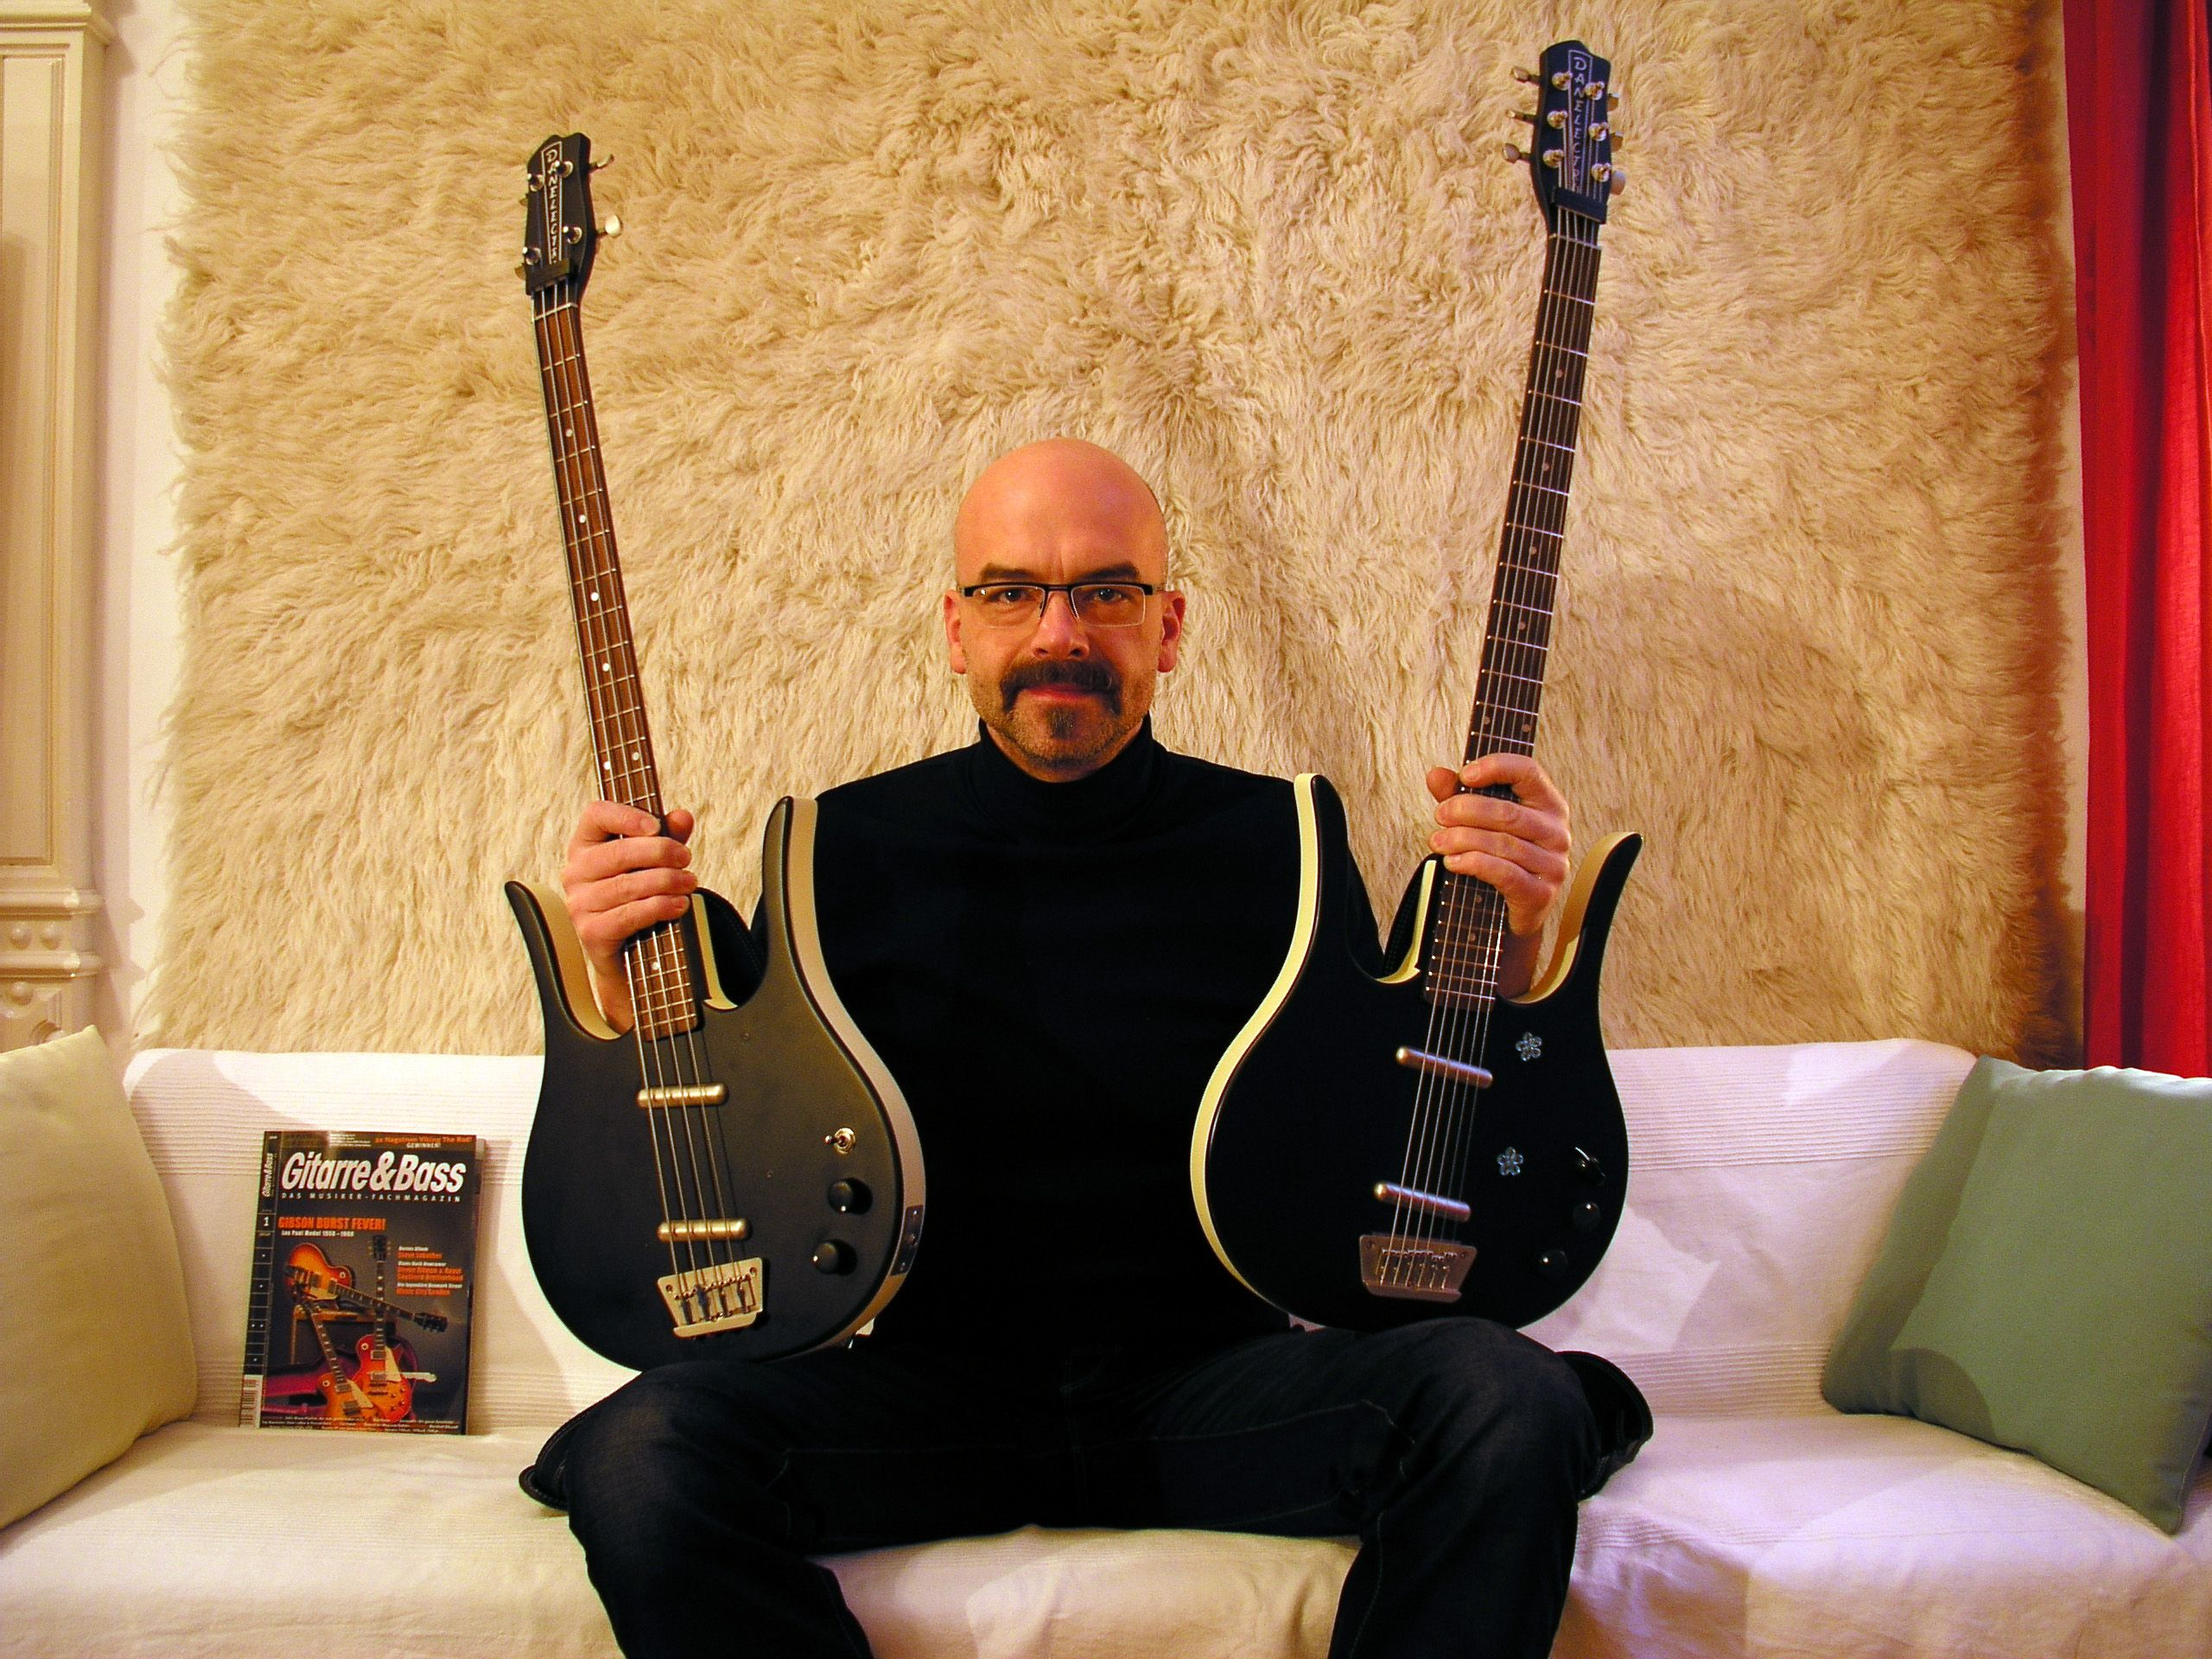 Danalectro Longhorn Bass & Baritone Guitar reissues, with